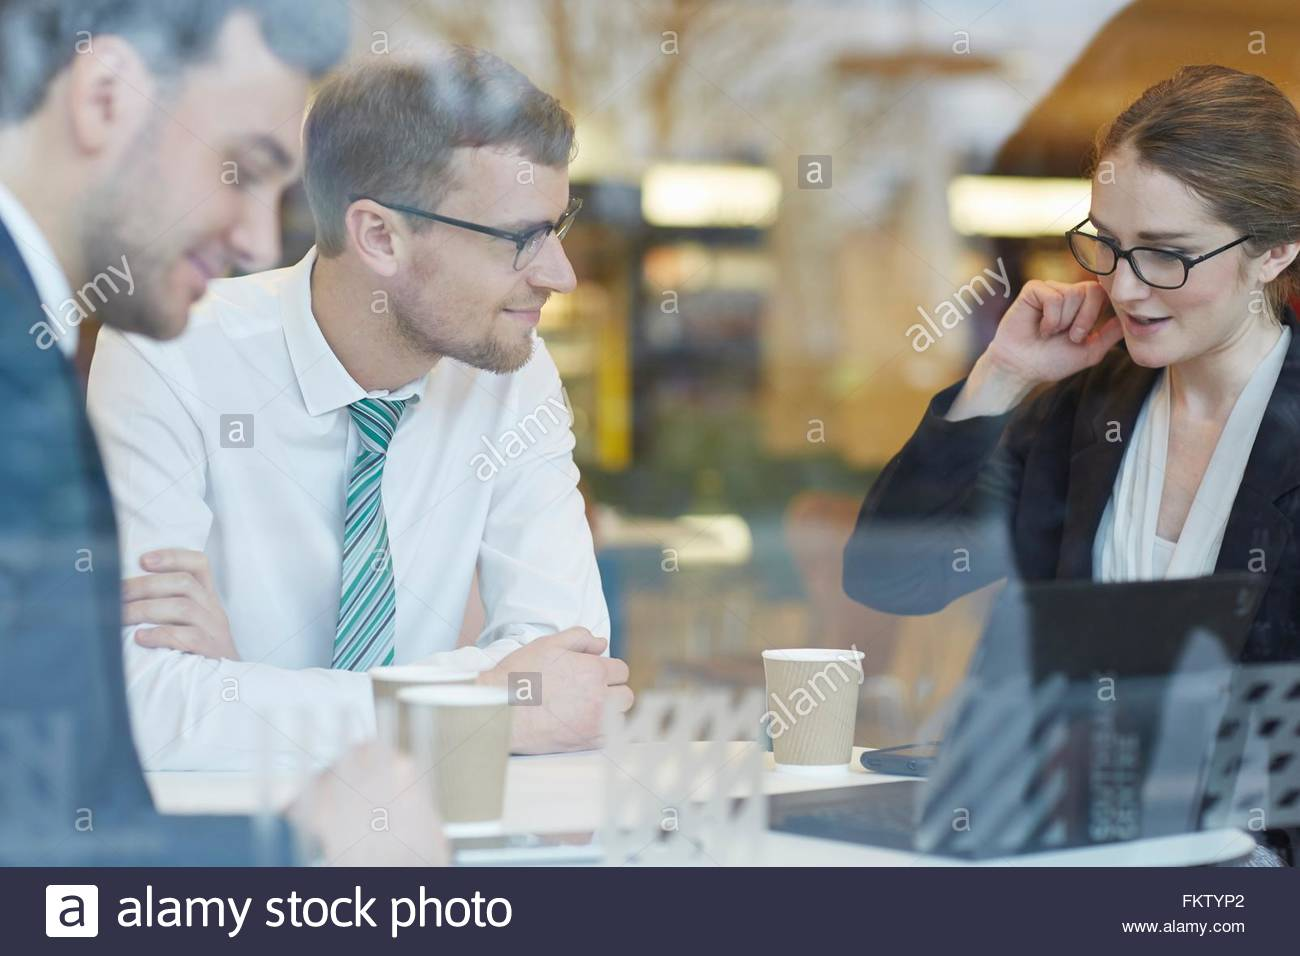 View through window of business colleagues wearing eye glasses sitting at table drinking coffee, talking - Stock Image